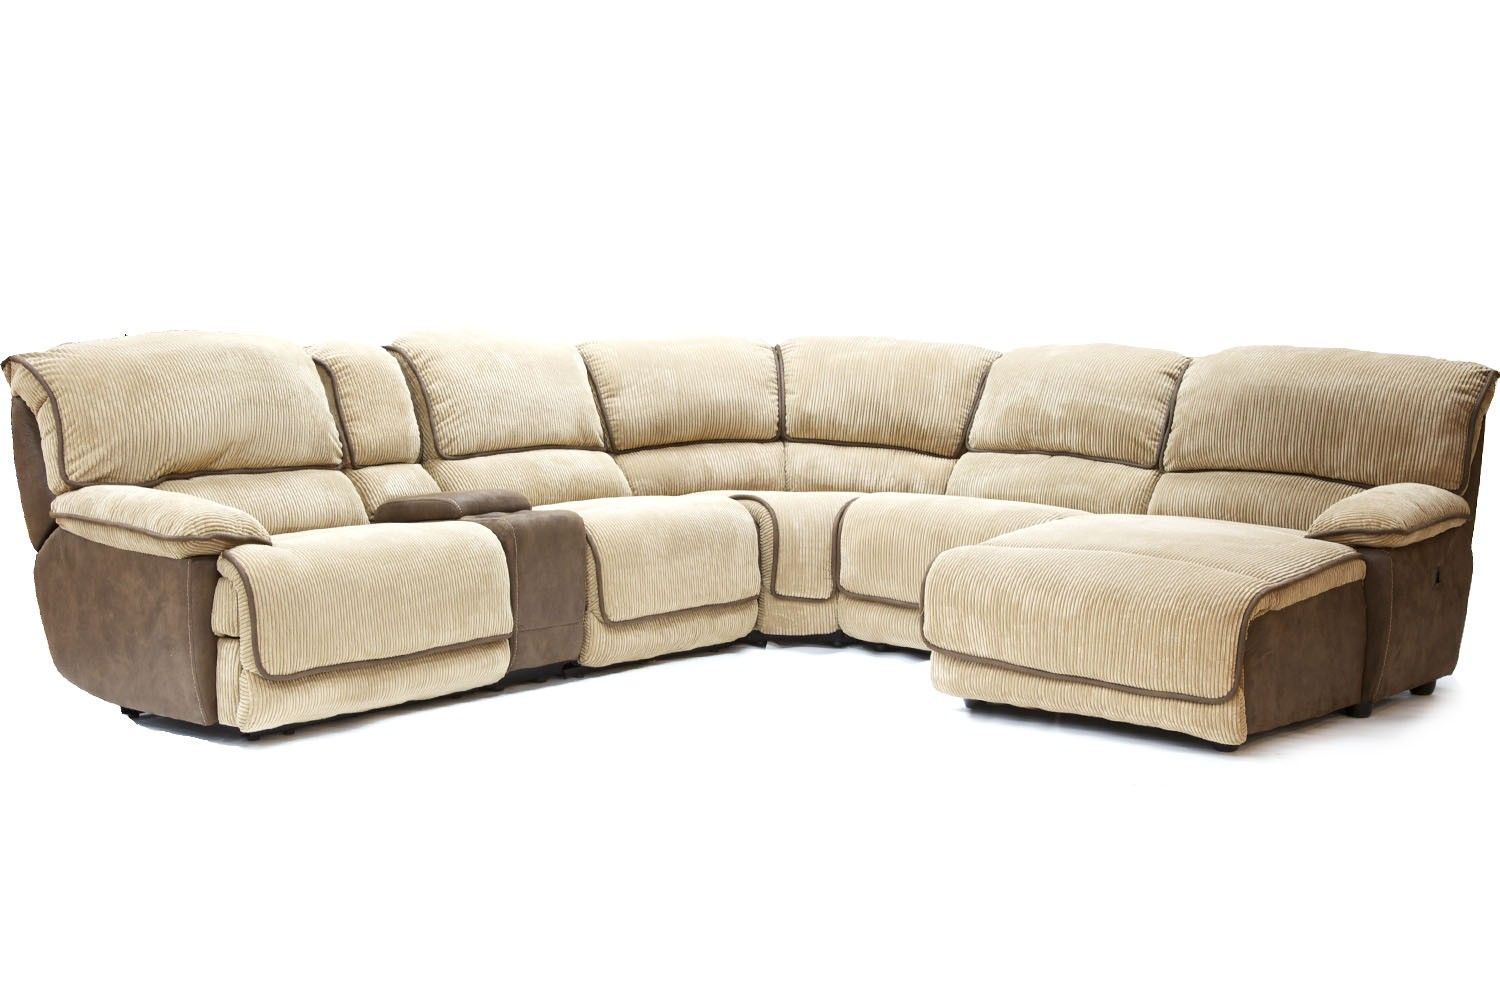 Mor Furniture For Less The Austin Cafe Reclining Living Room